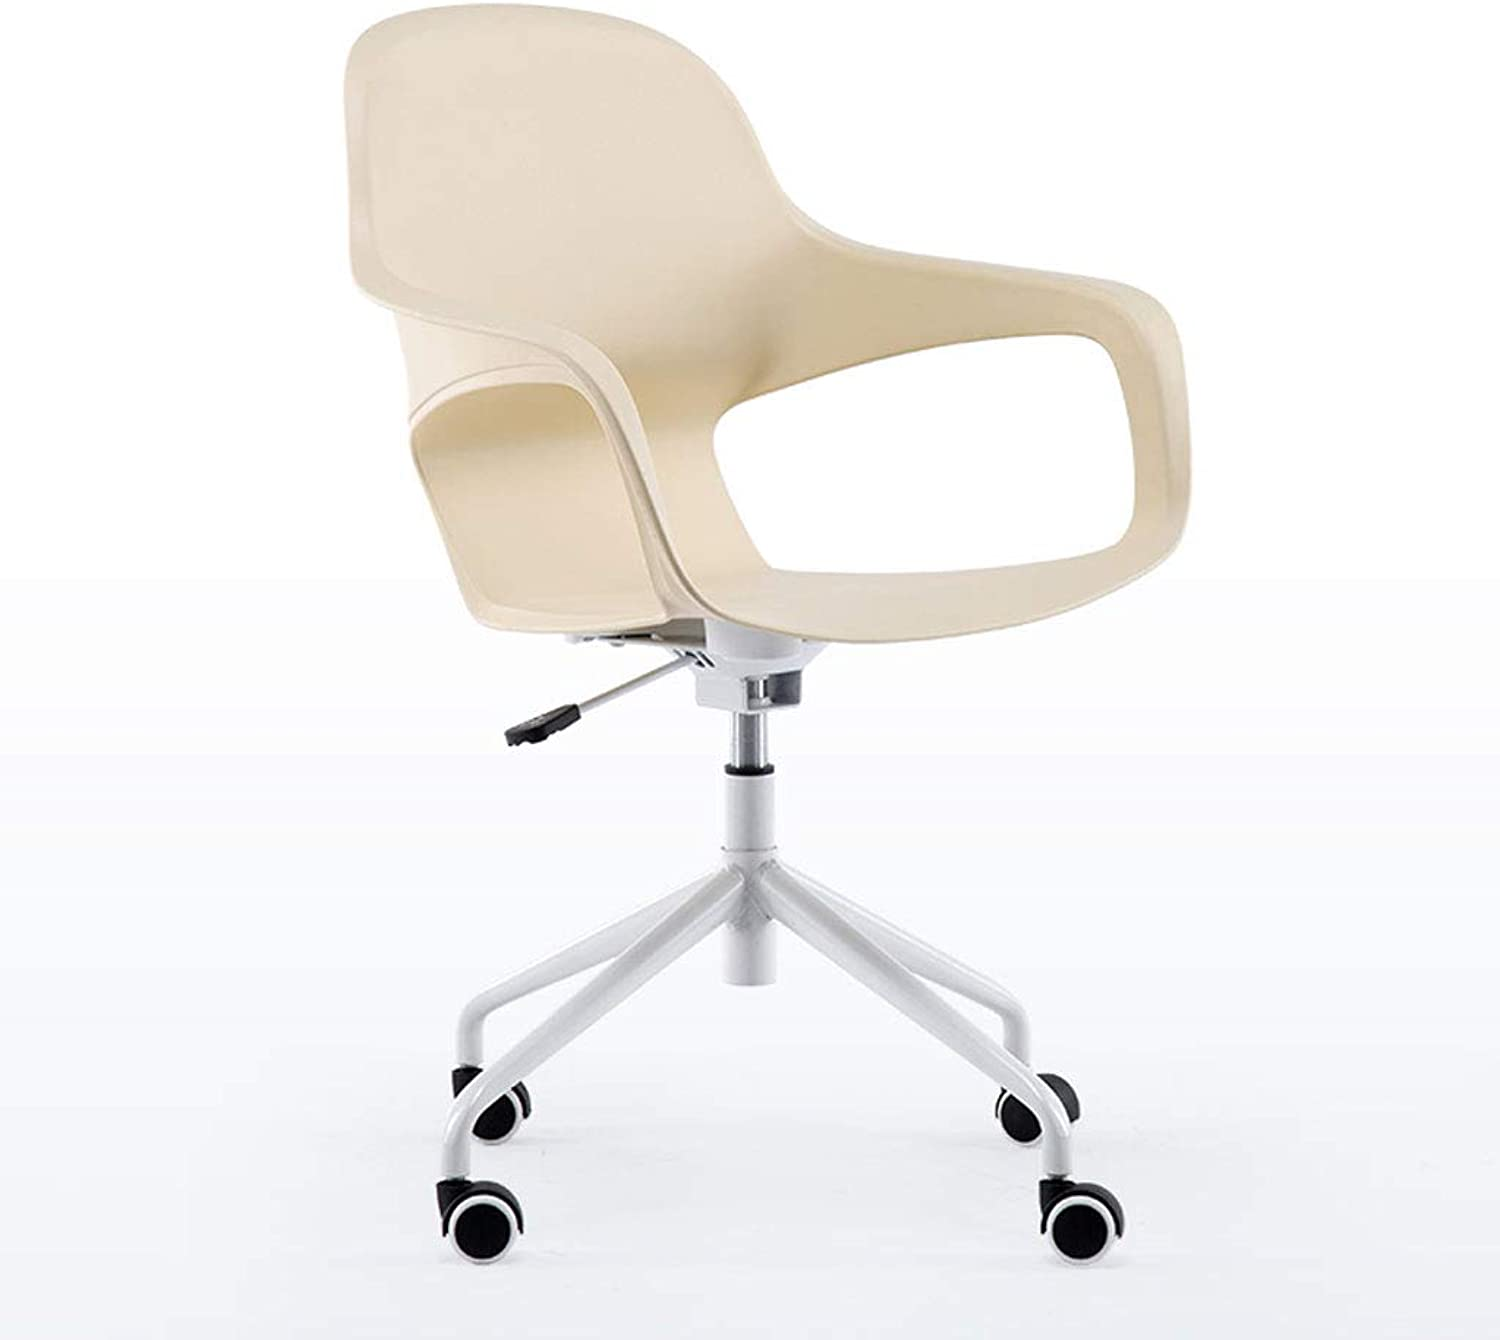 CQ Computer Chair Modern Simple Nordic Leisure redating Home Study Personality Creative Office Chair (color   White)